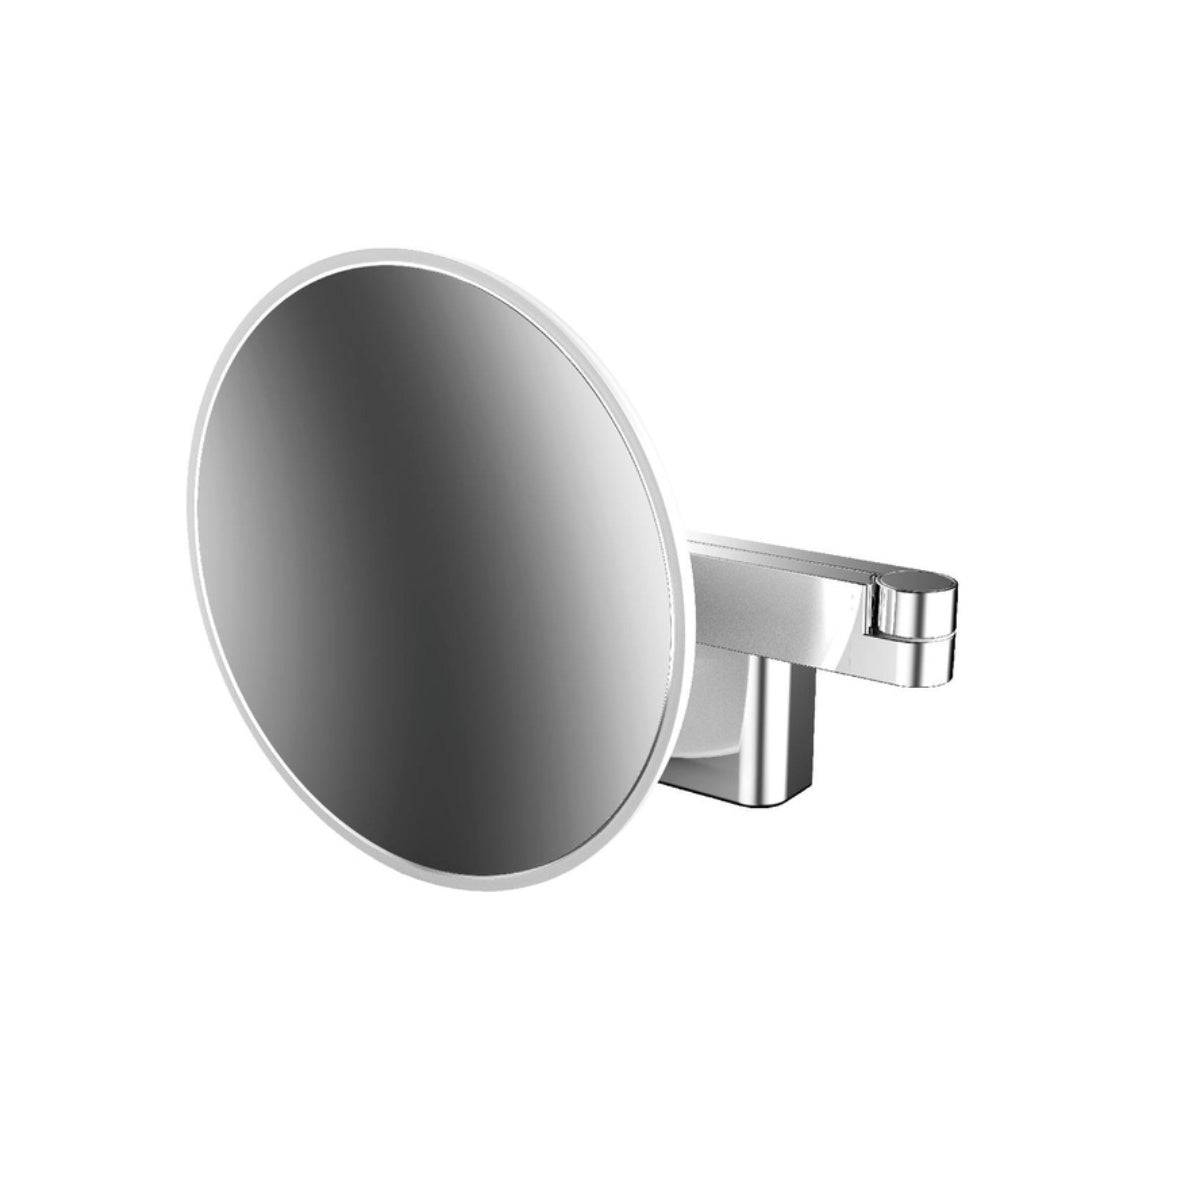 Emco Light Diffusion System LED Mirror, 3x (INTRO OFFER)